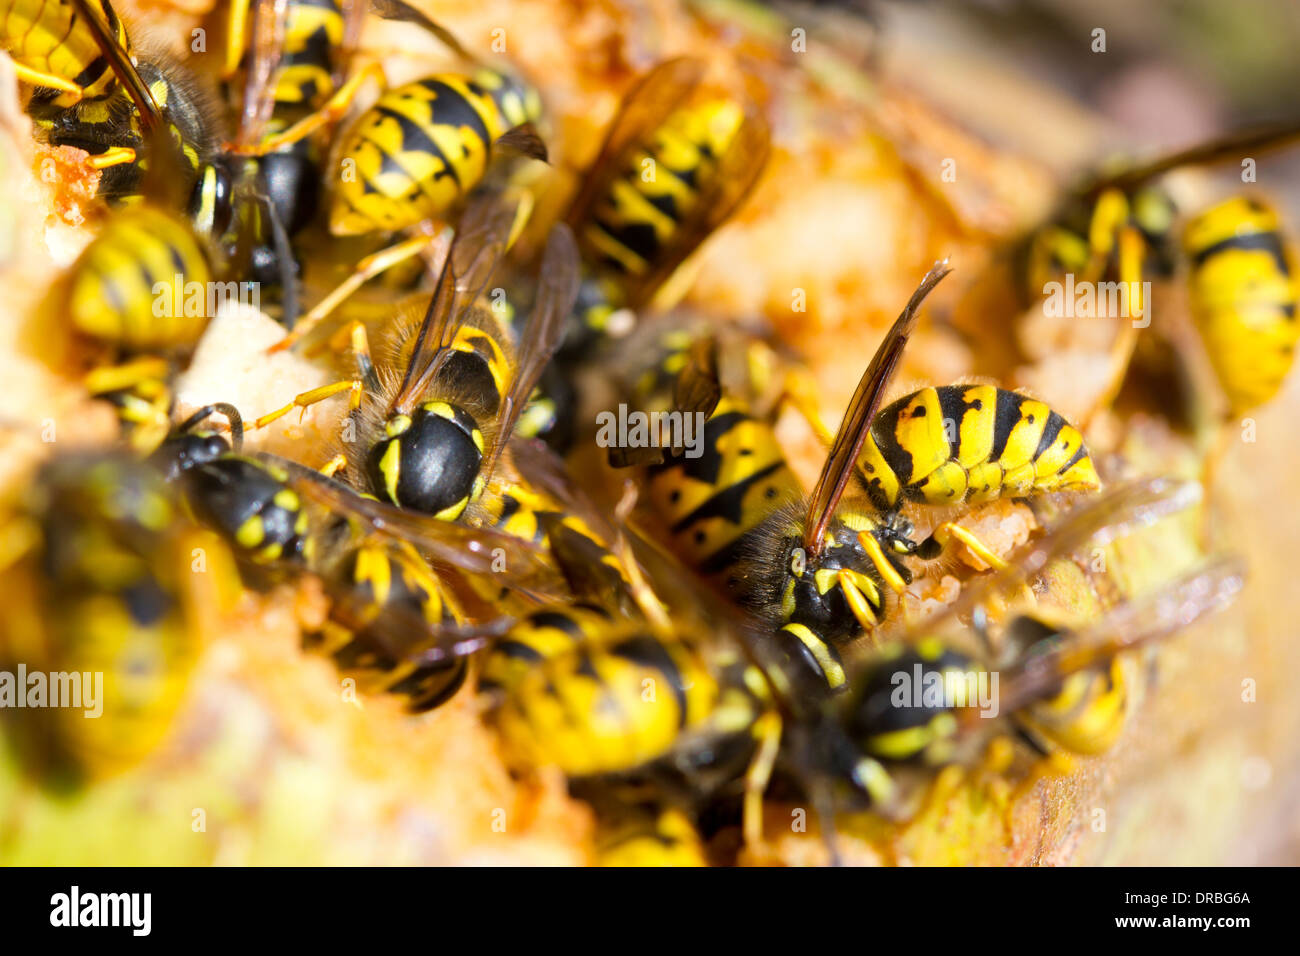 Common wasp workers (Vespula vulgaris) feeding on a fallen pear in a garden. Carmarthenshire, Wales. September. - Stock Image